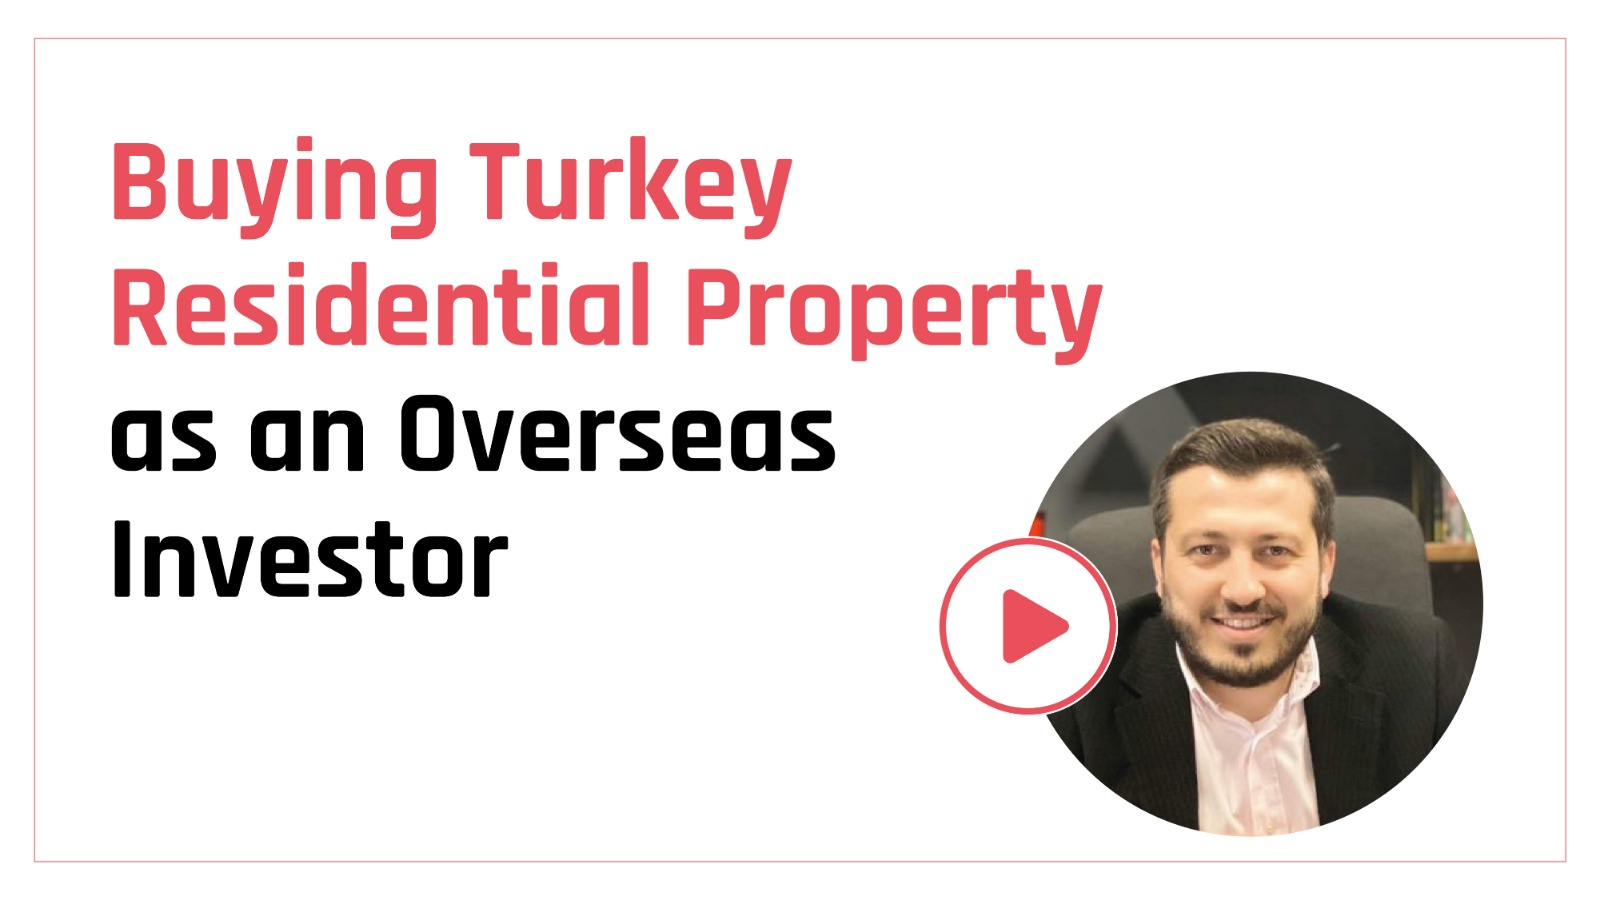 Buying Turkey Residential Property as an Overseas Investor